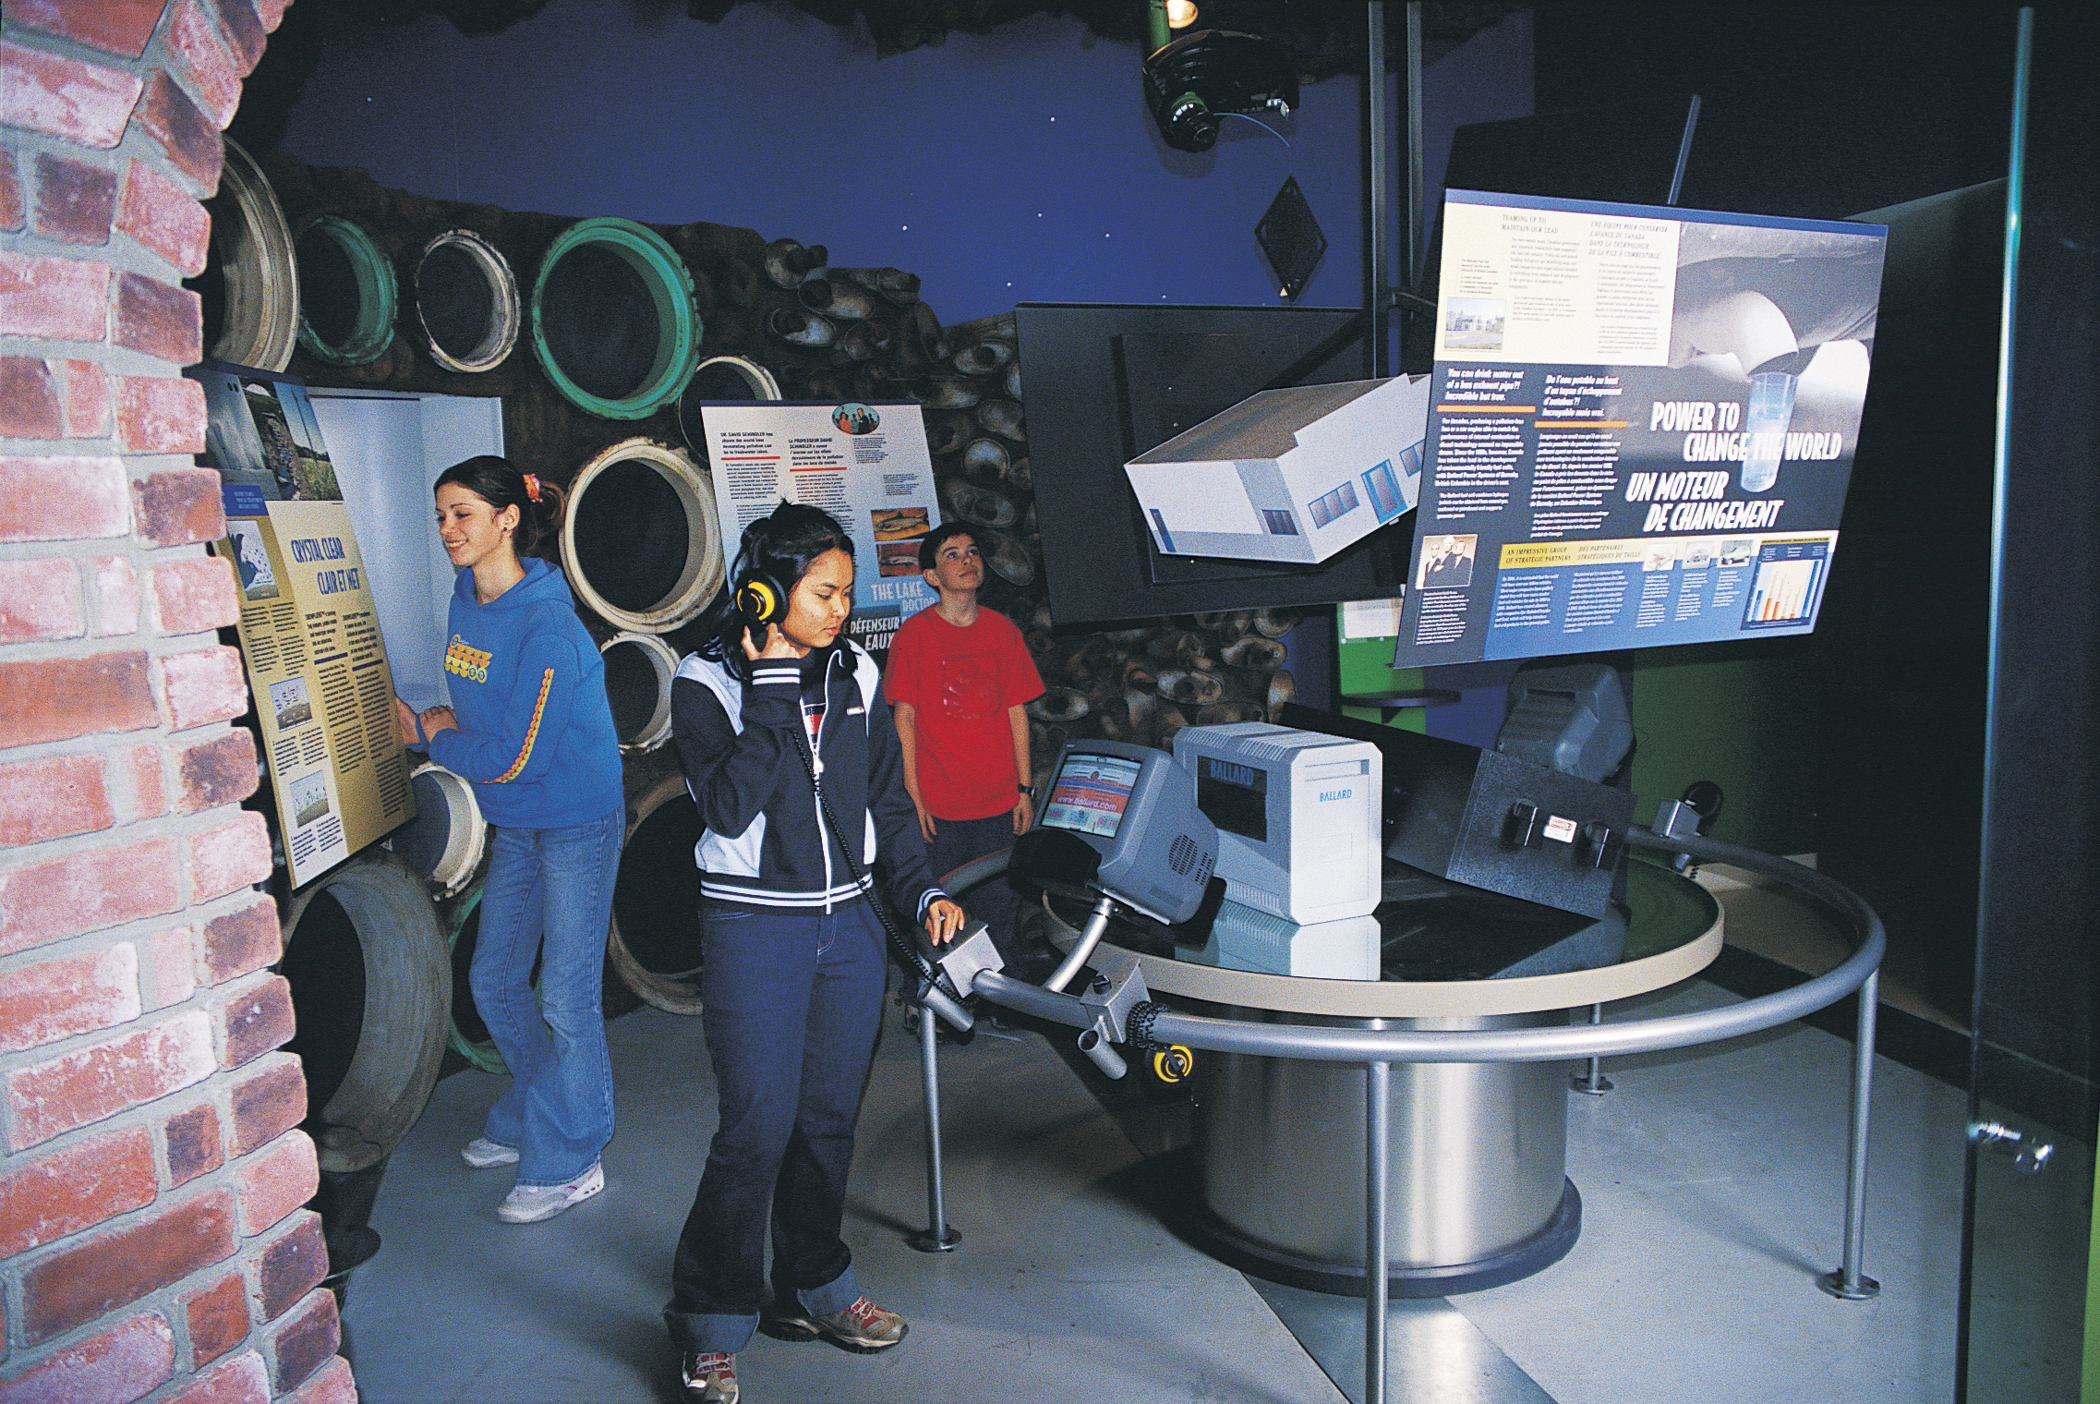 Visitors explore an exhibit at the Canada and the World Pavilion